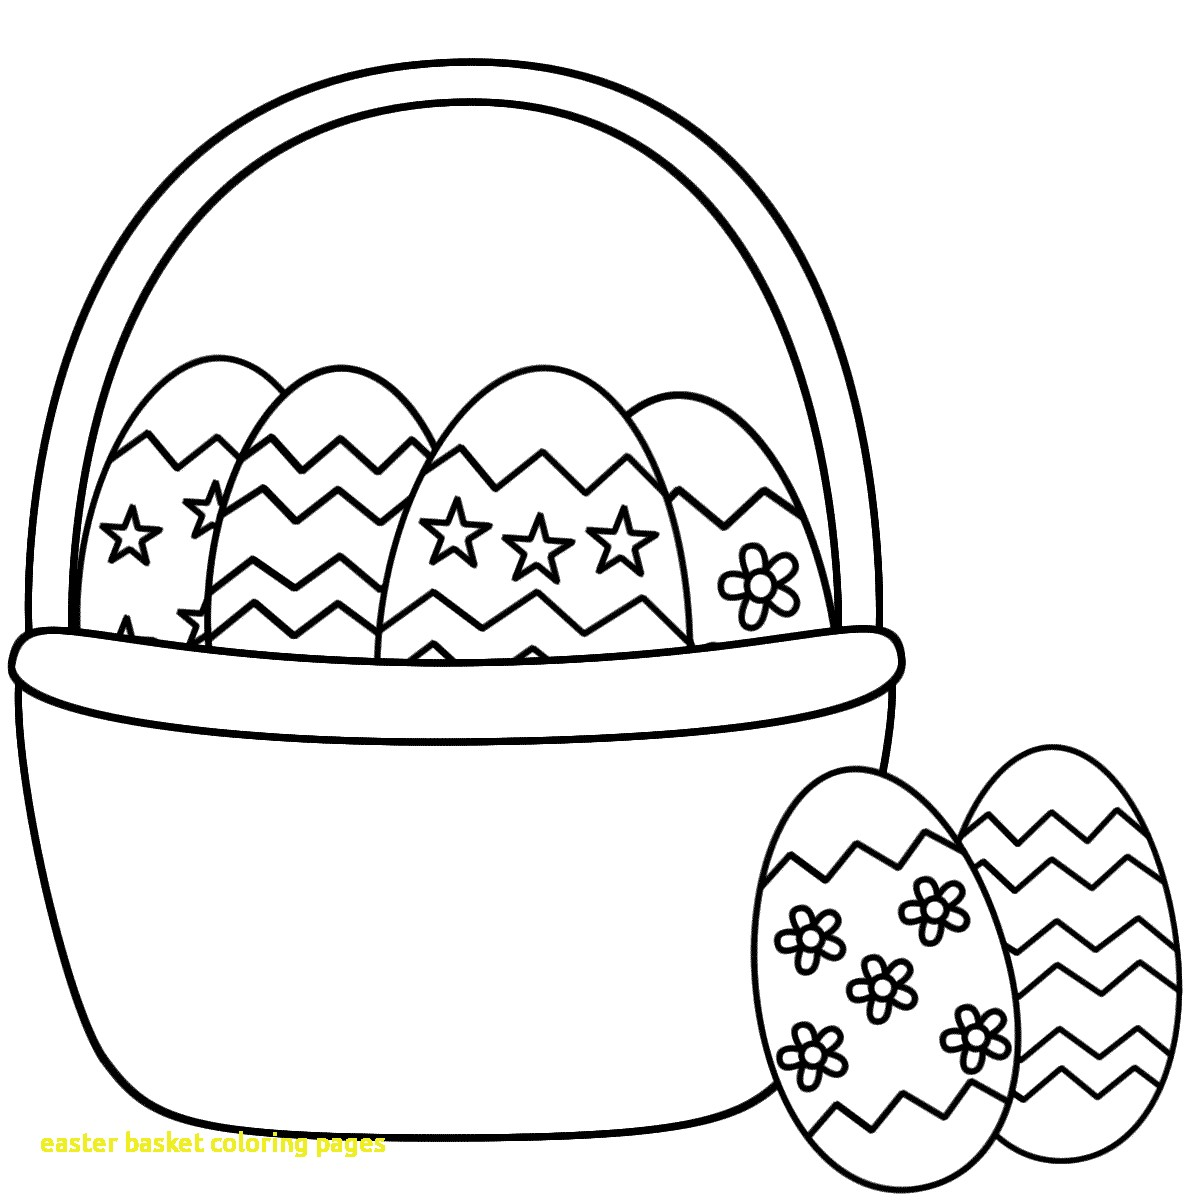 1200x1200 Easter Basket Coloring Pages With Coloring Pages Easter Baskets